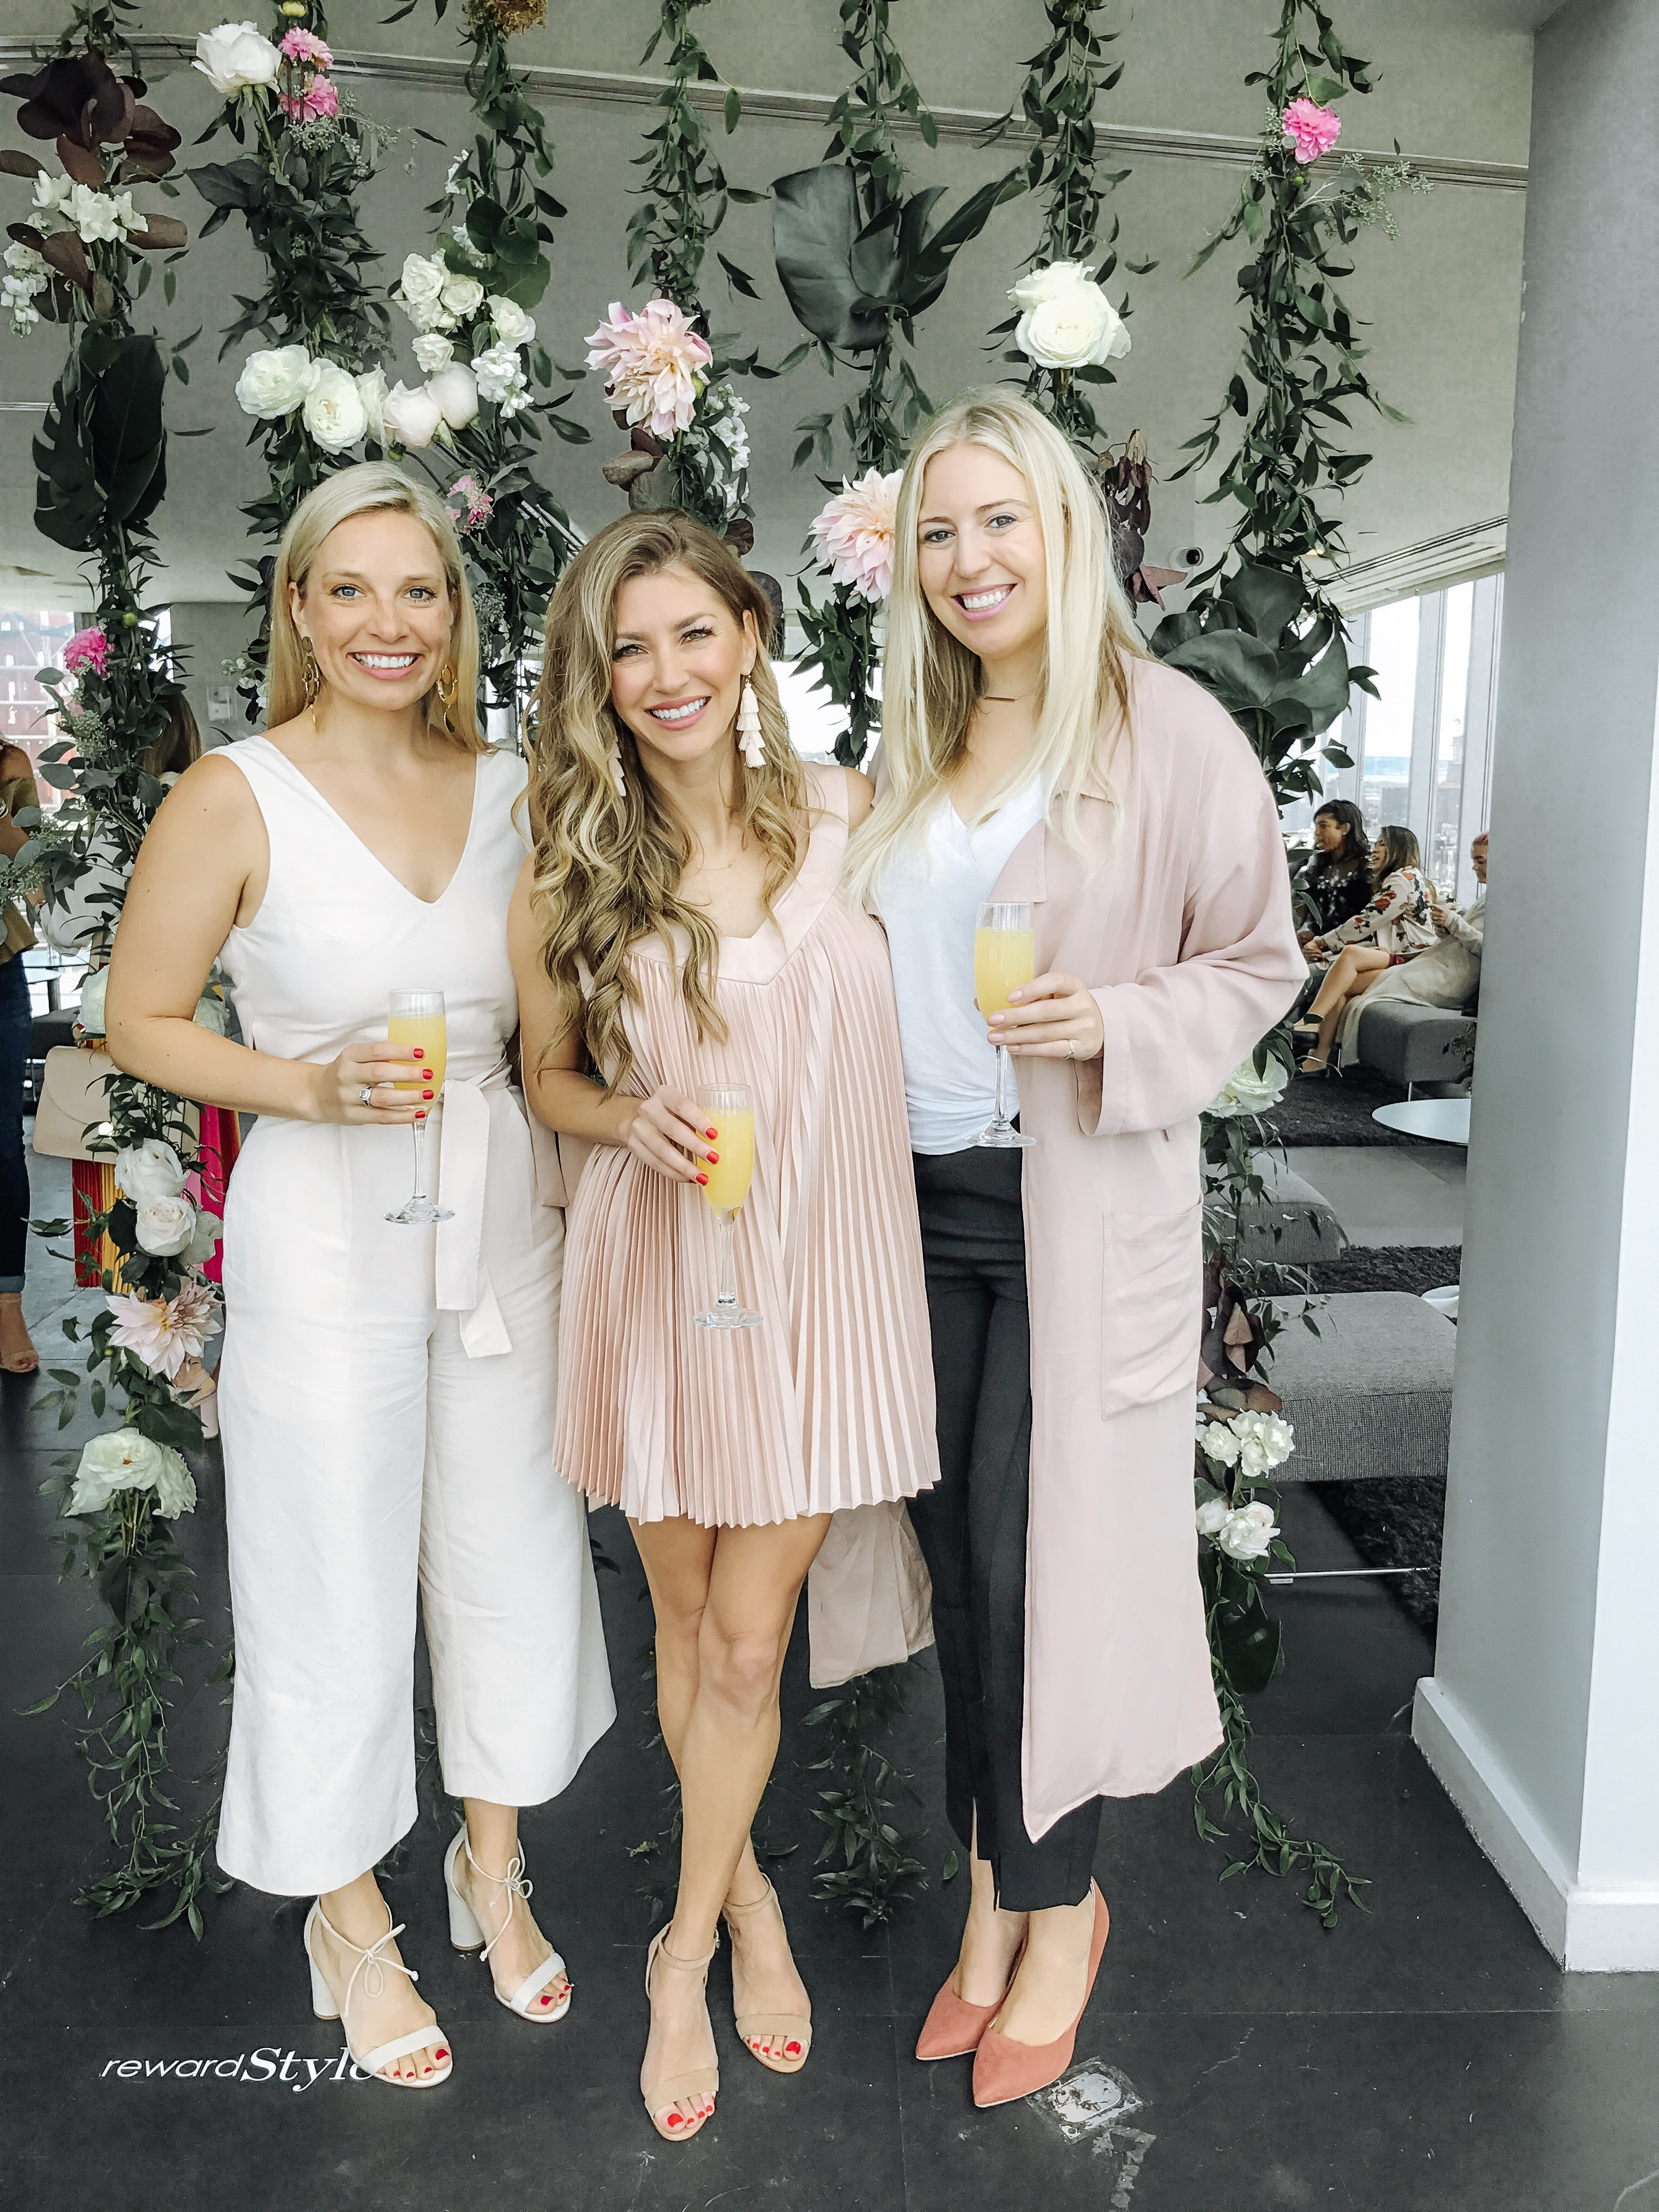 Blggers at the RewardStyle Party in NYC with Meggie Tate, Ashley Streff and AshLee Frazier